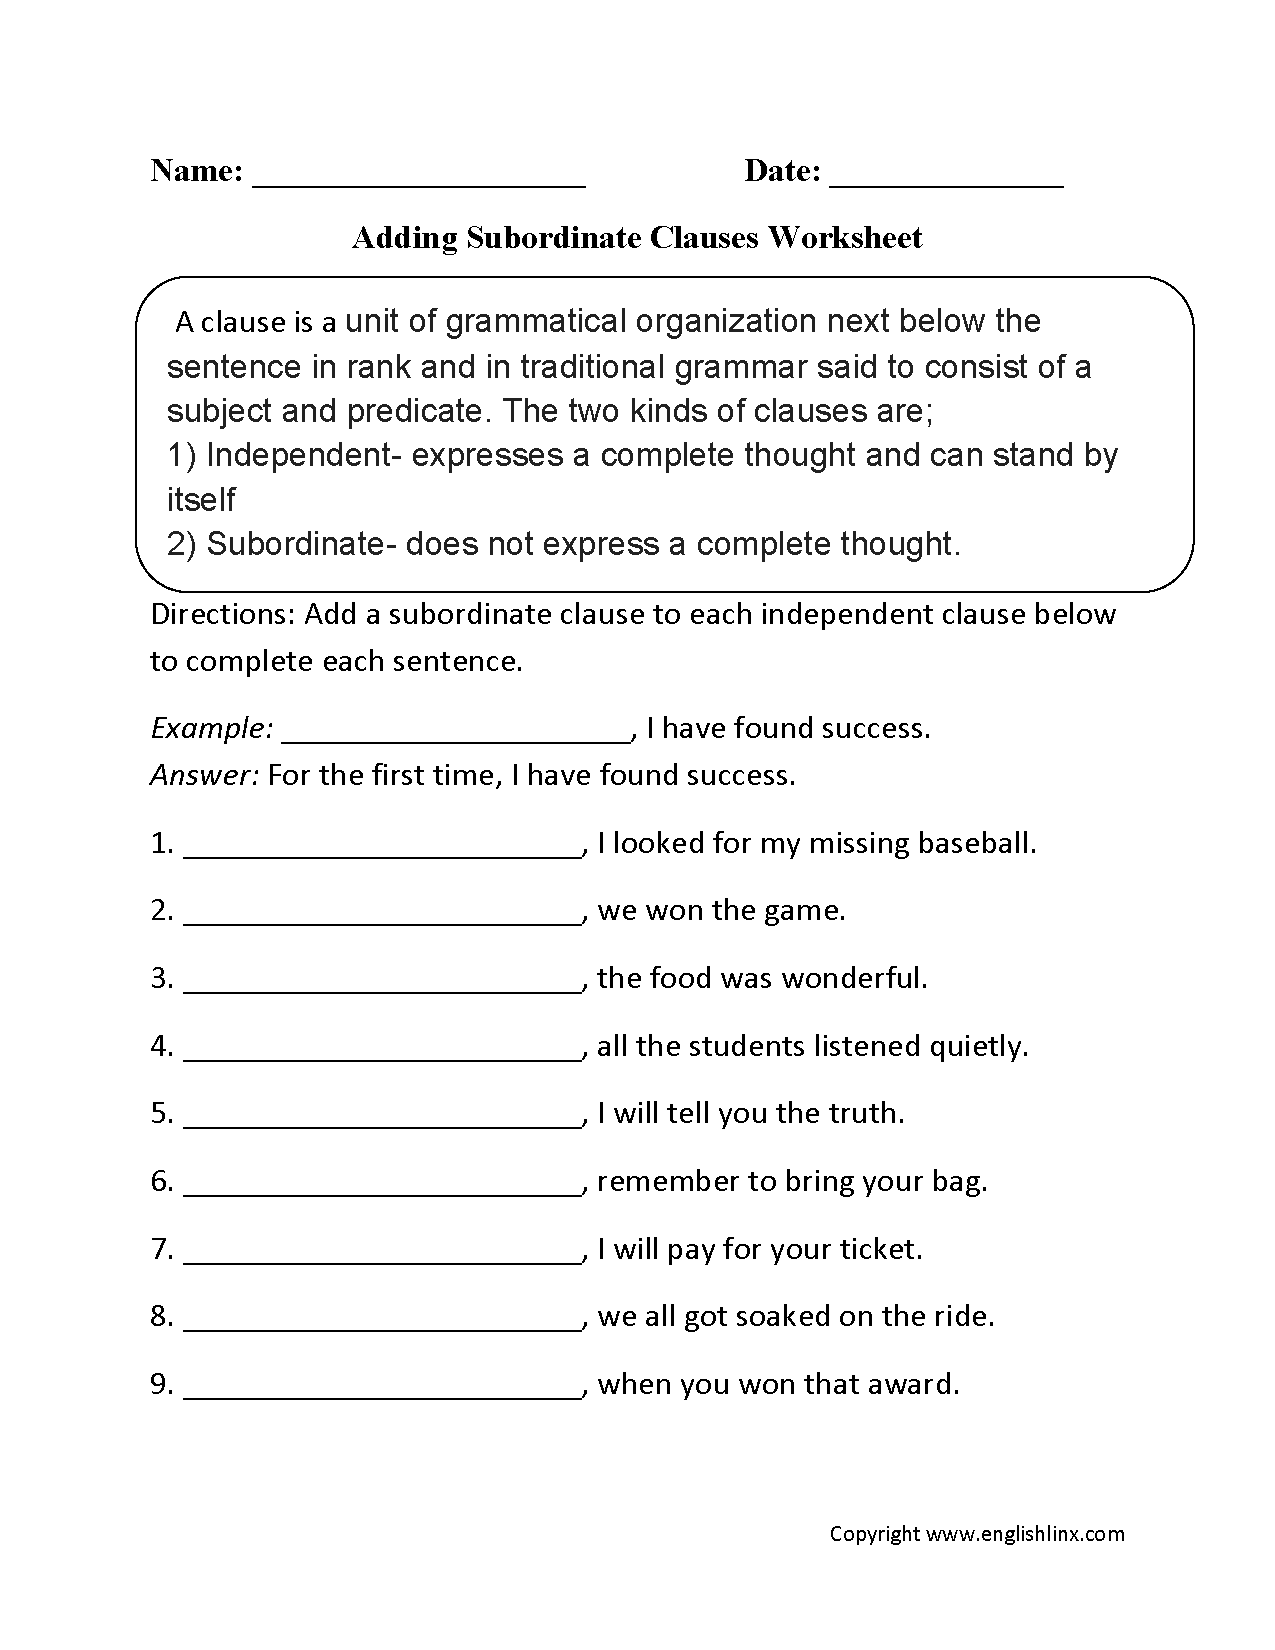 Worksheets Noun Clauses Worksheet adding subordinate clauses worksheet reading and writing these clause worksheets are great for working with use the beginner intermediate or advanced level